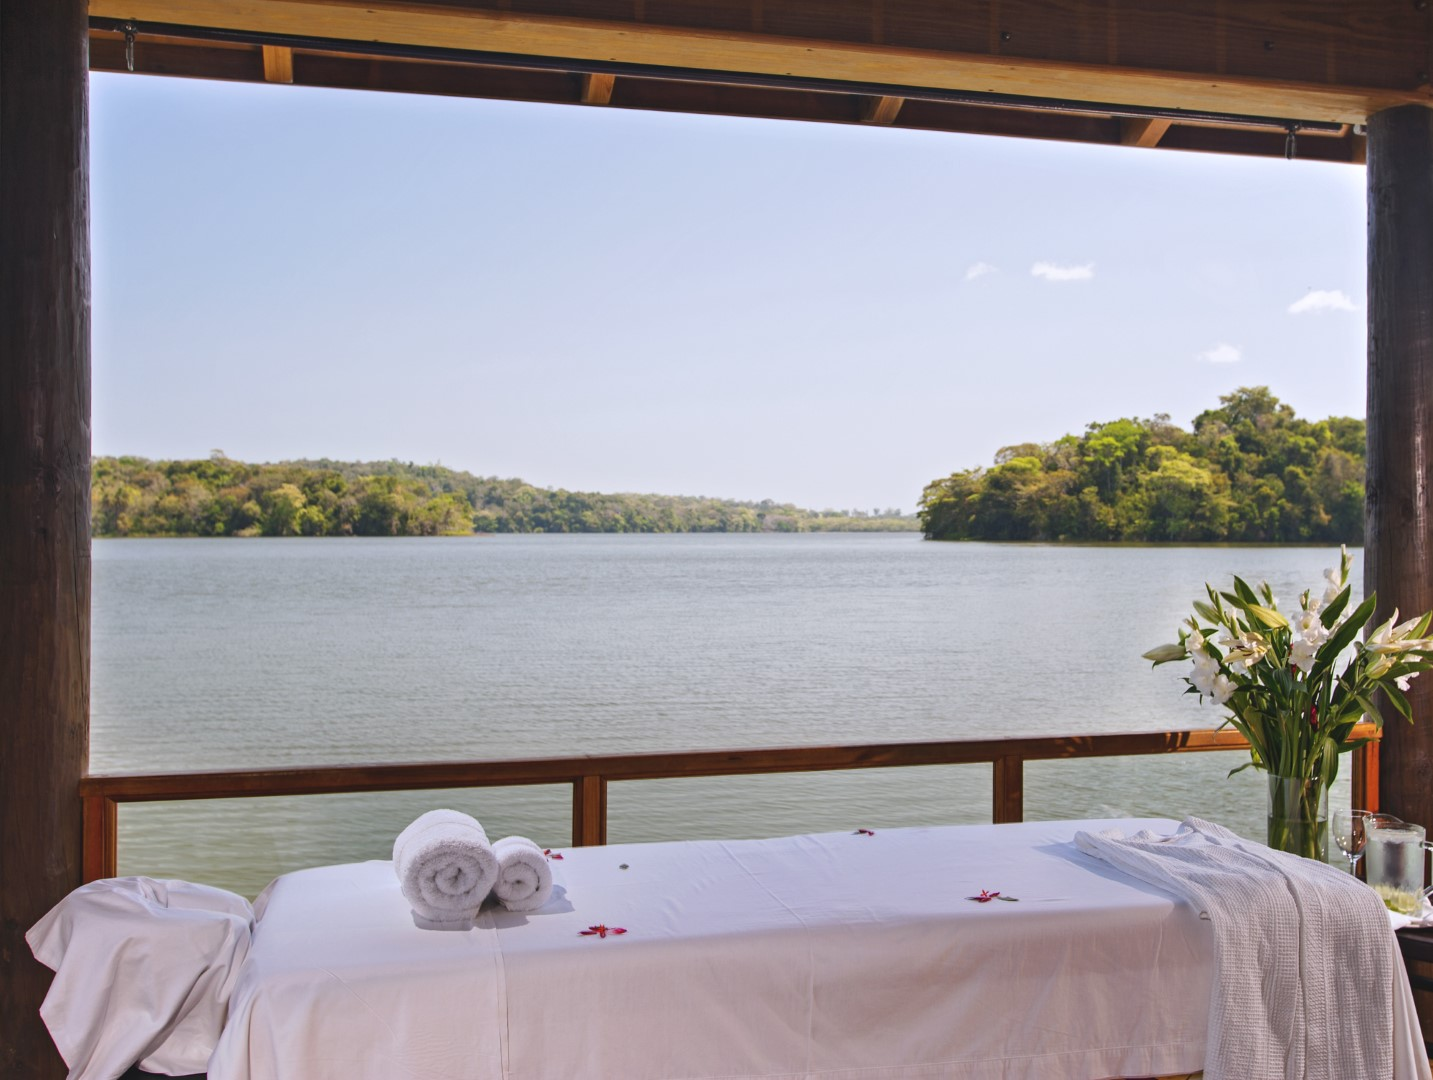 Massage overlooking lake at Hotel Las Lagunas, Guatemala